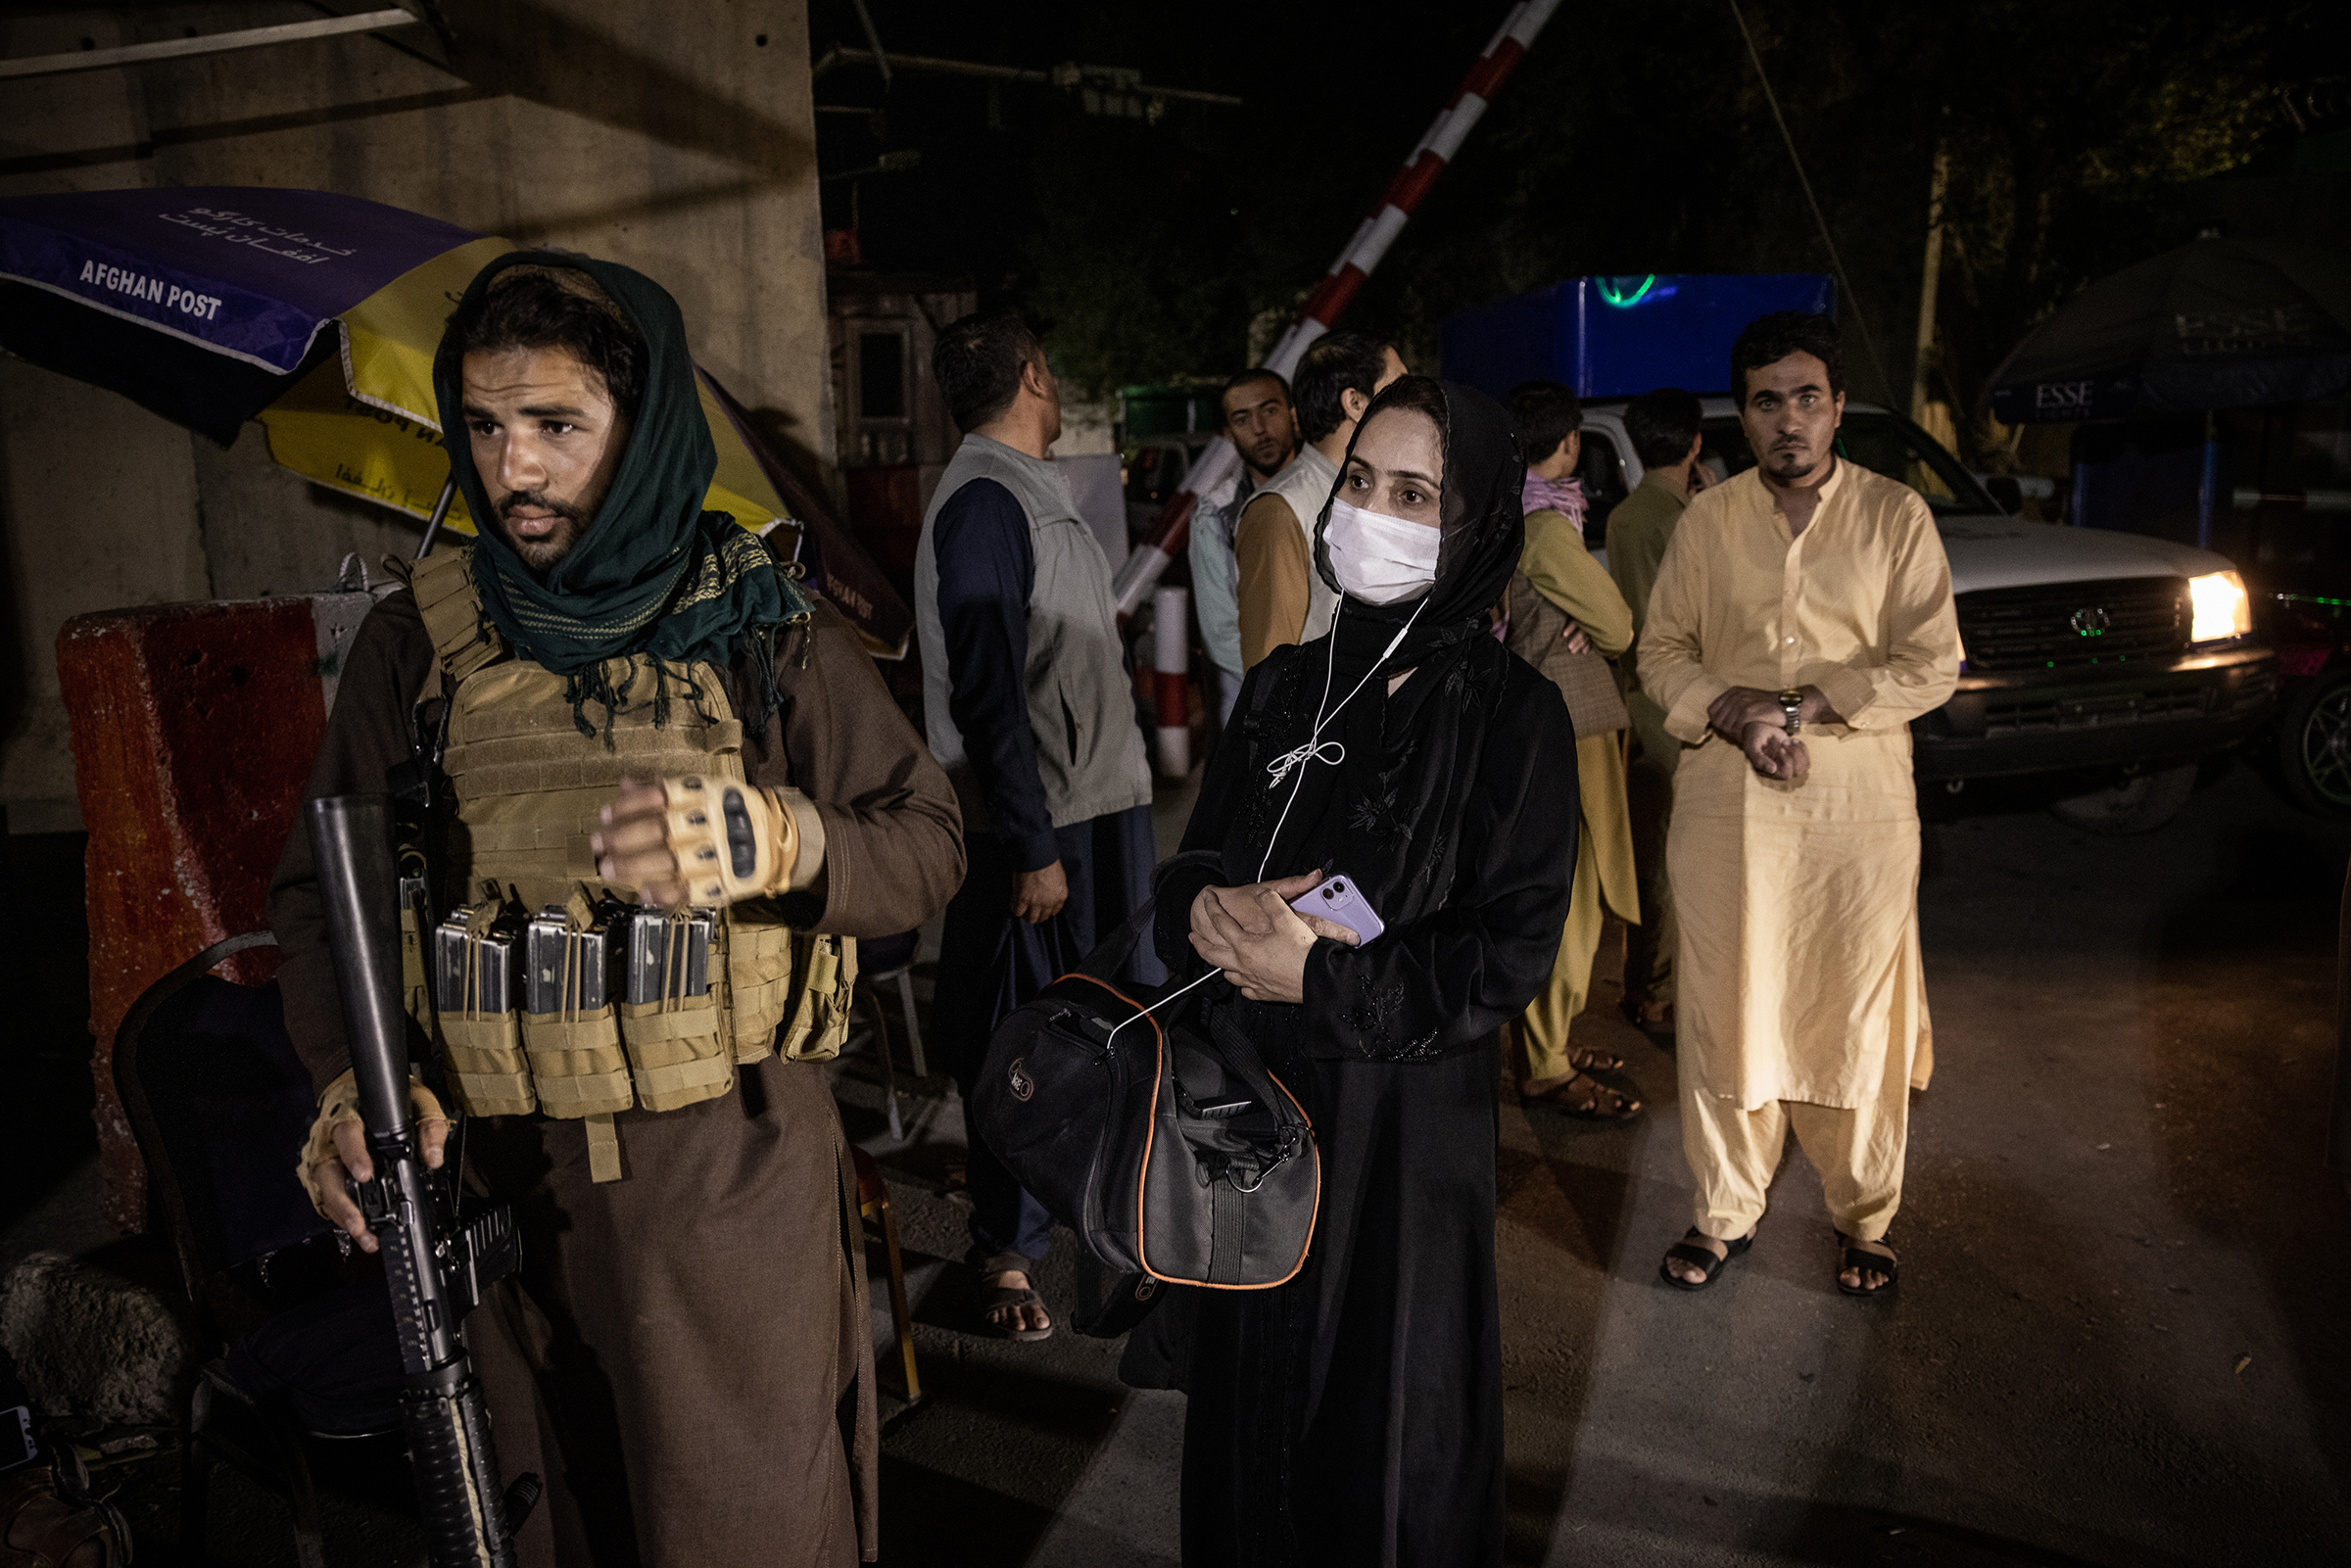 Zahra Nabi, a female journalist working for Bano TV, near Taliban fighters at a checkpoint after the first Taliban news conference in Kabul on Aug. 17, two days after their takeover.